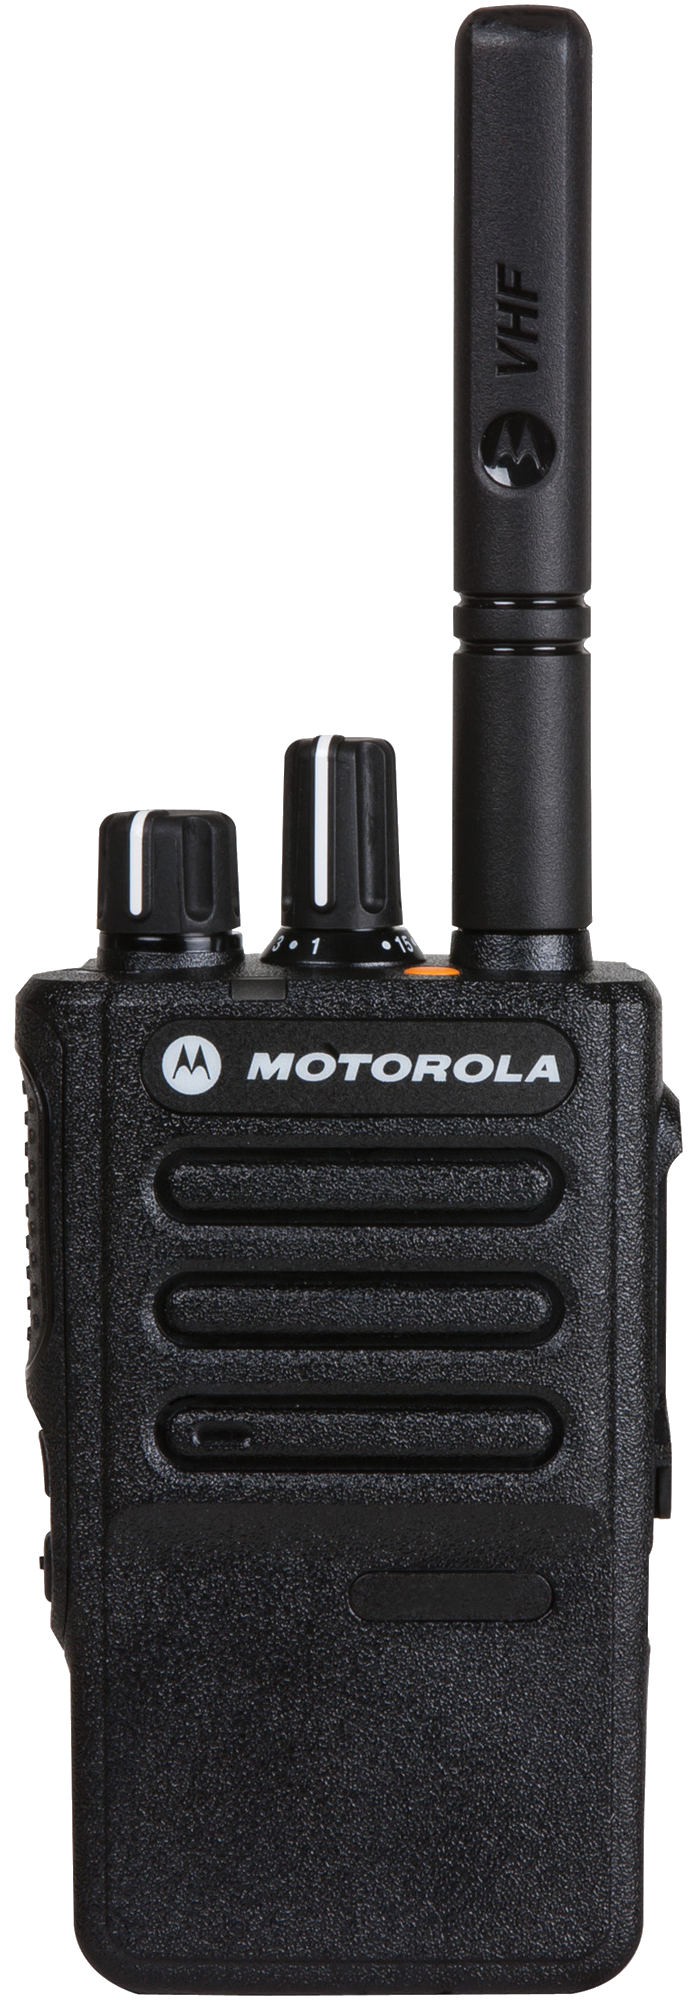 Motorola DP3441 Portable Radio